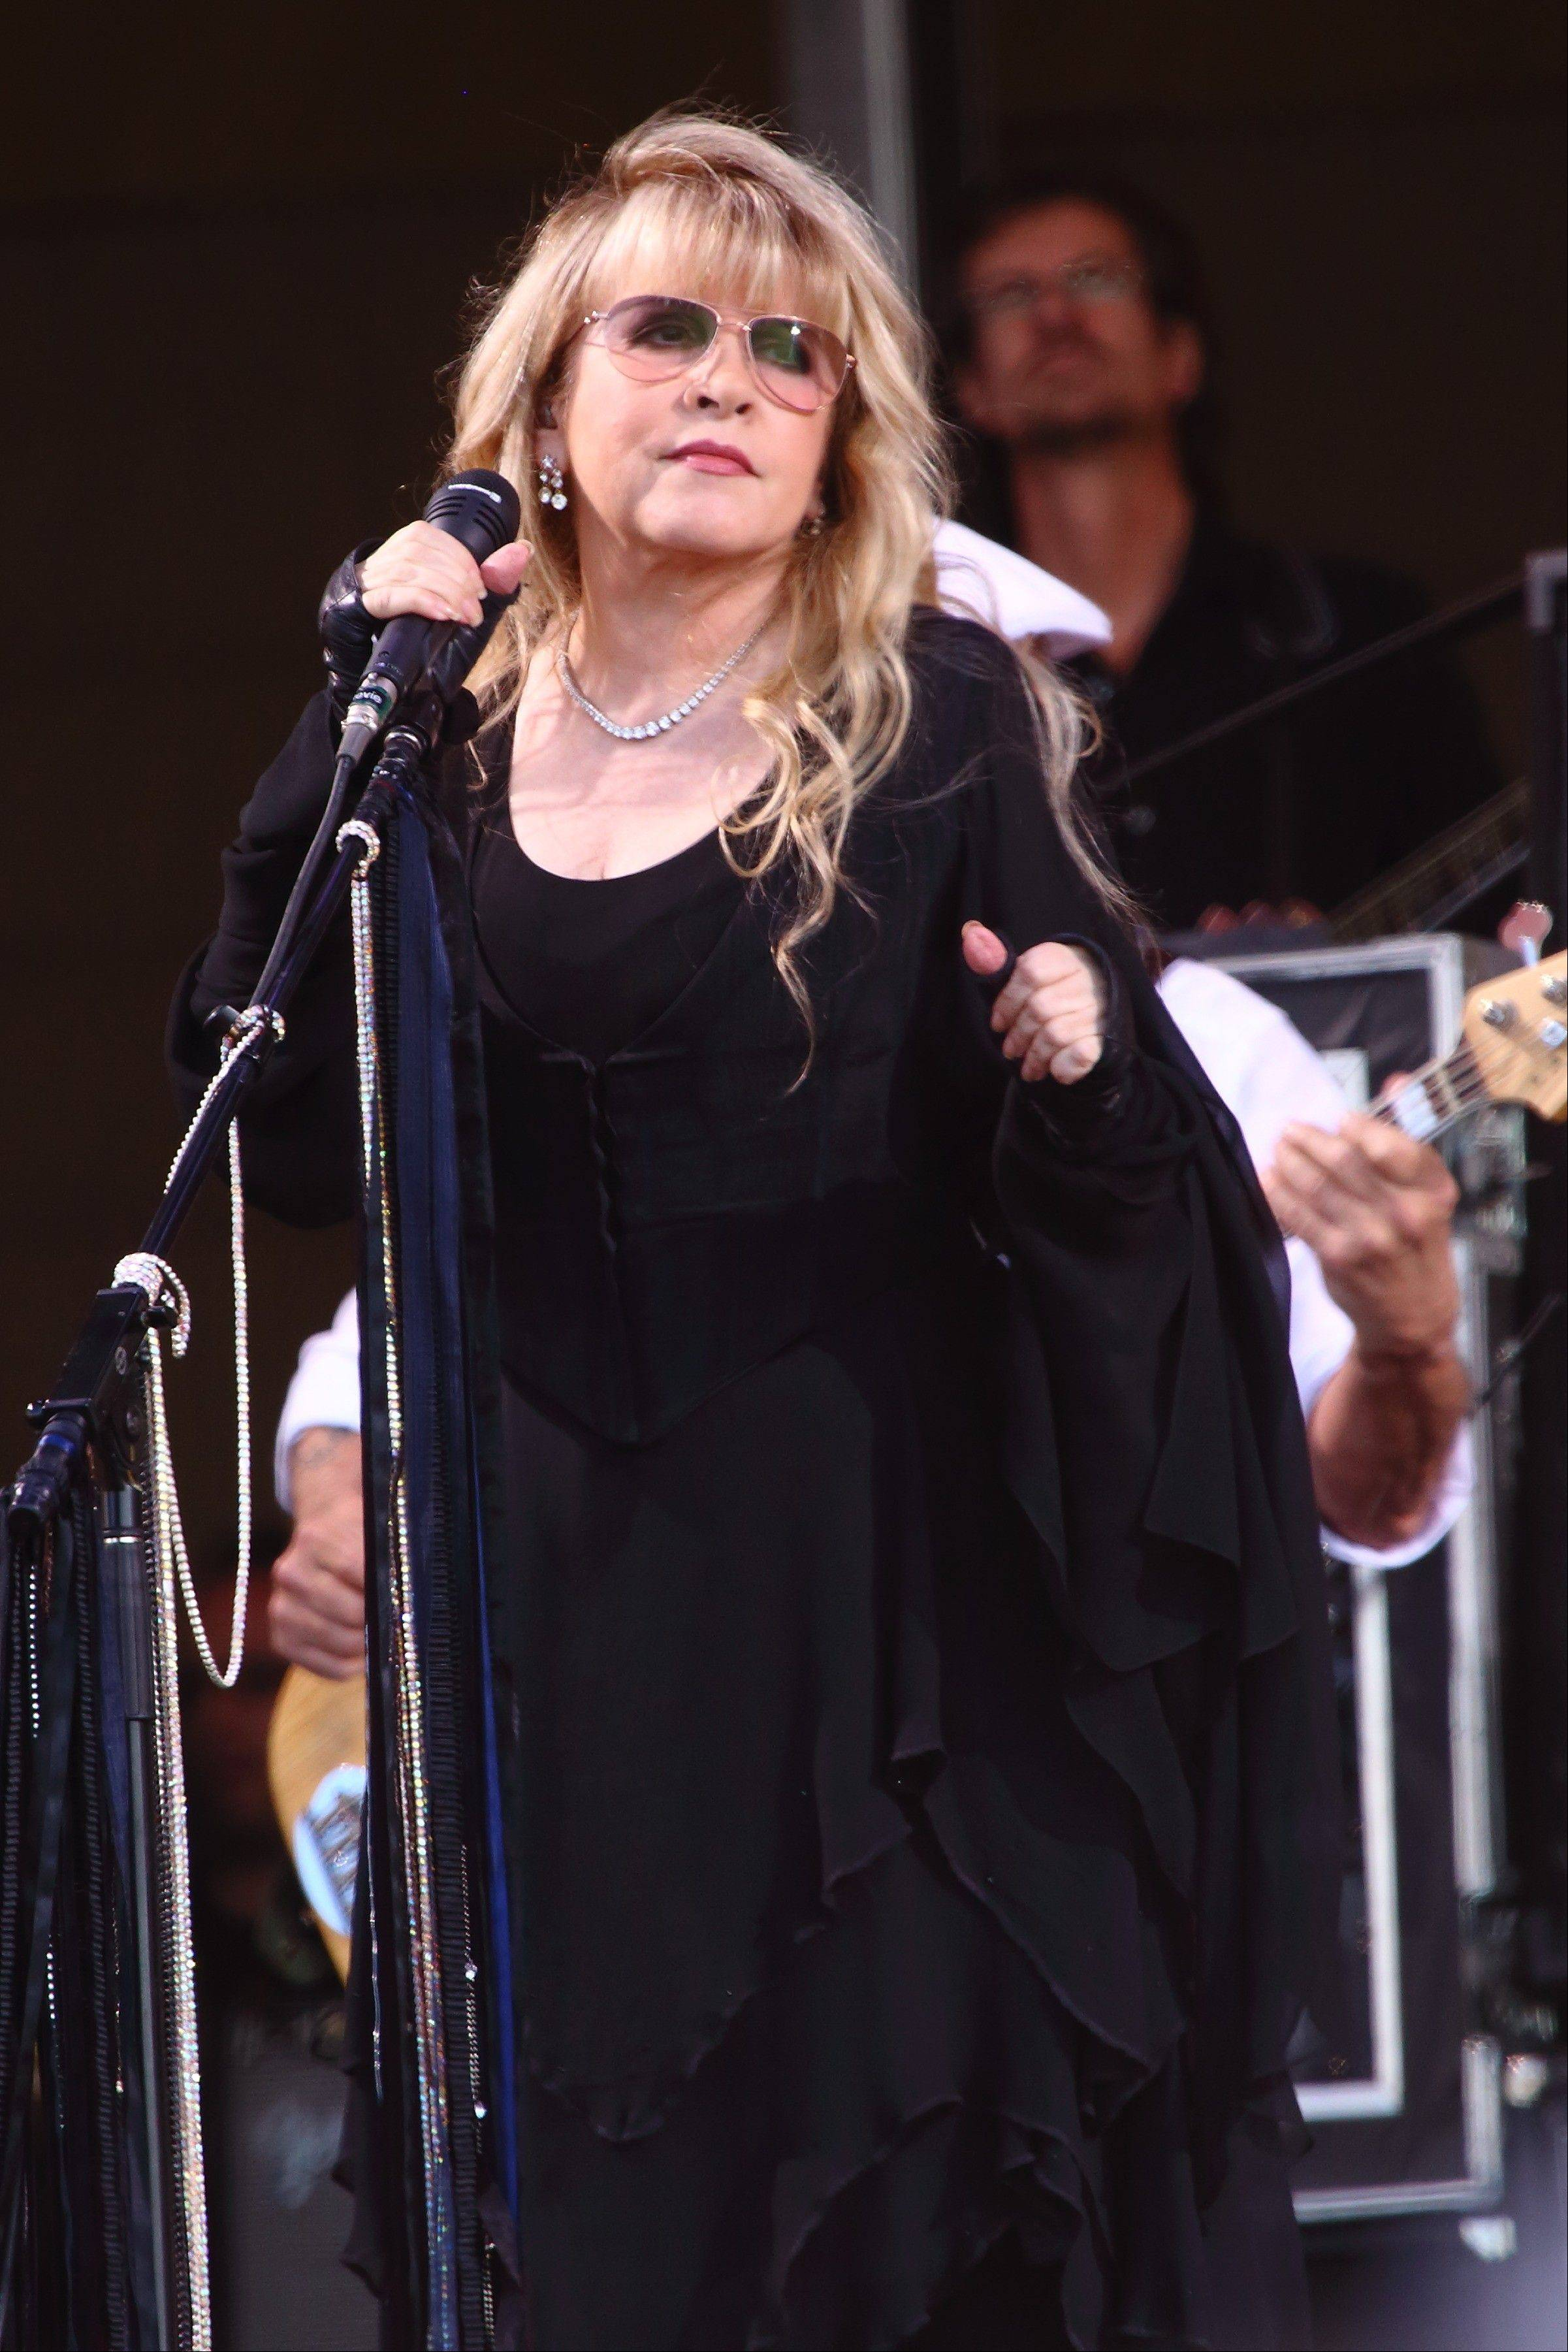 Stevie Nicks of Fleetwood Mac performs at The New Orleans Jazz & Heritage Festival in New Orleans, La.